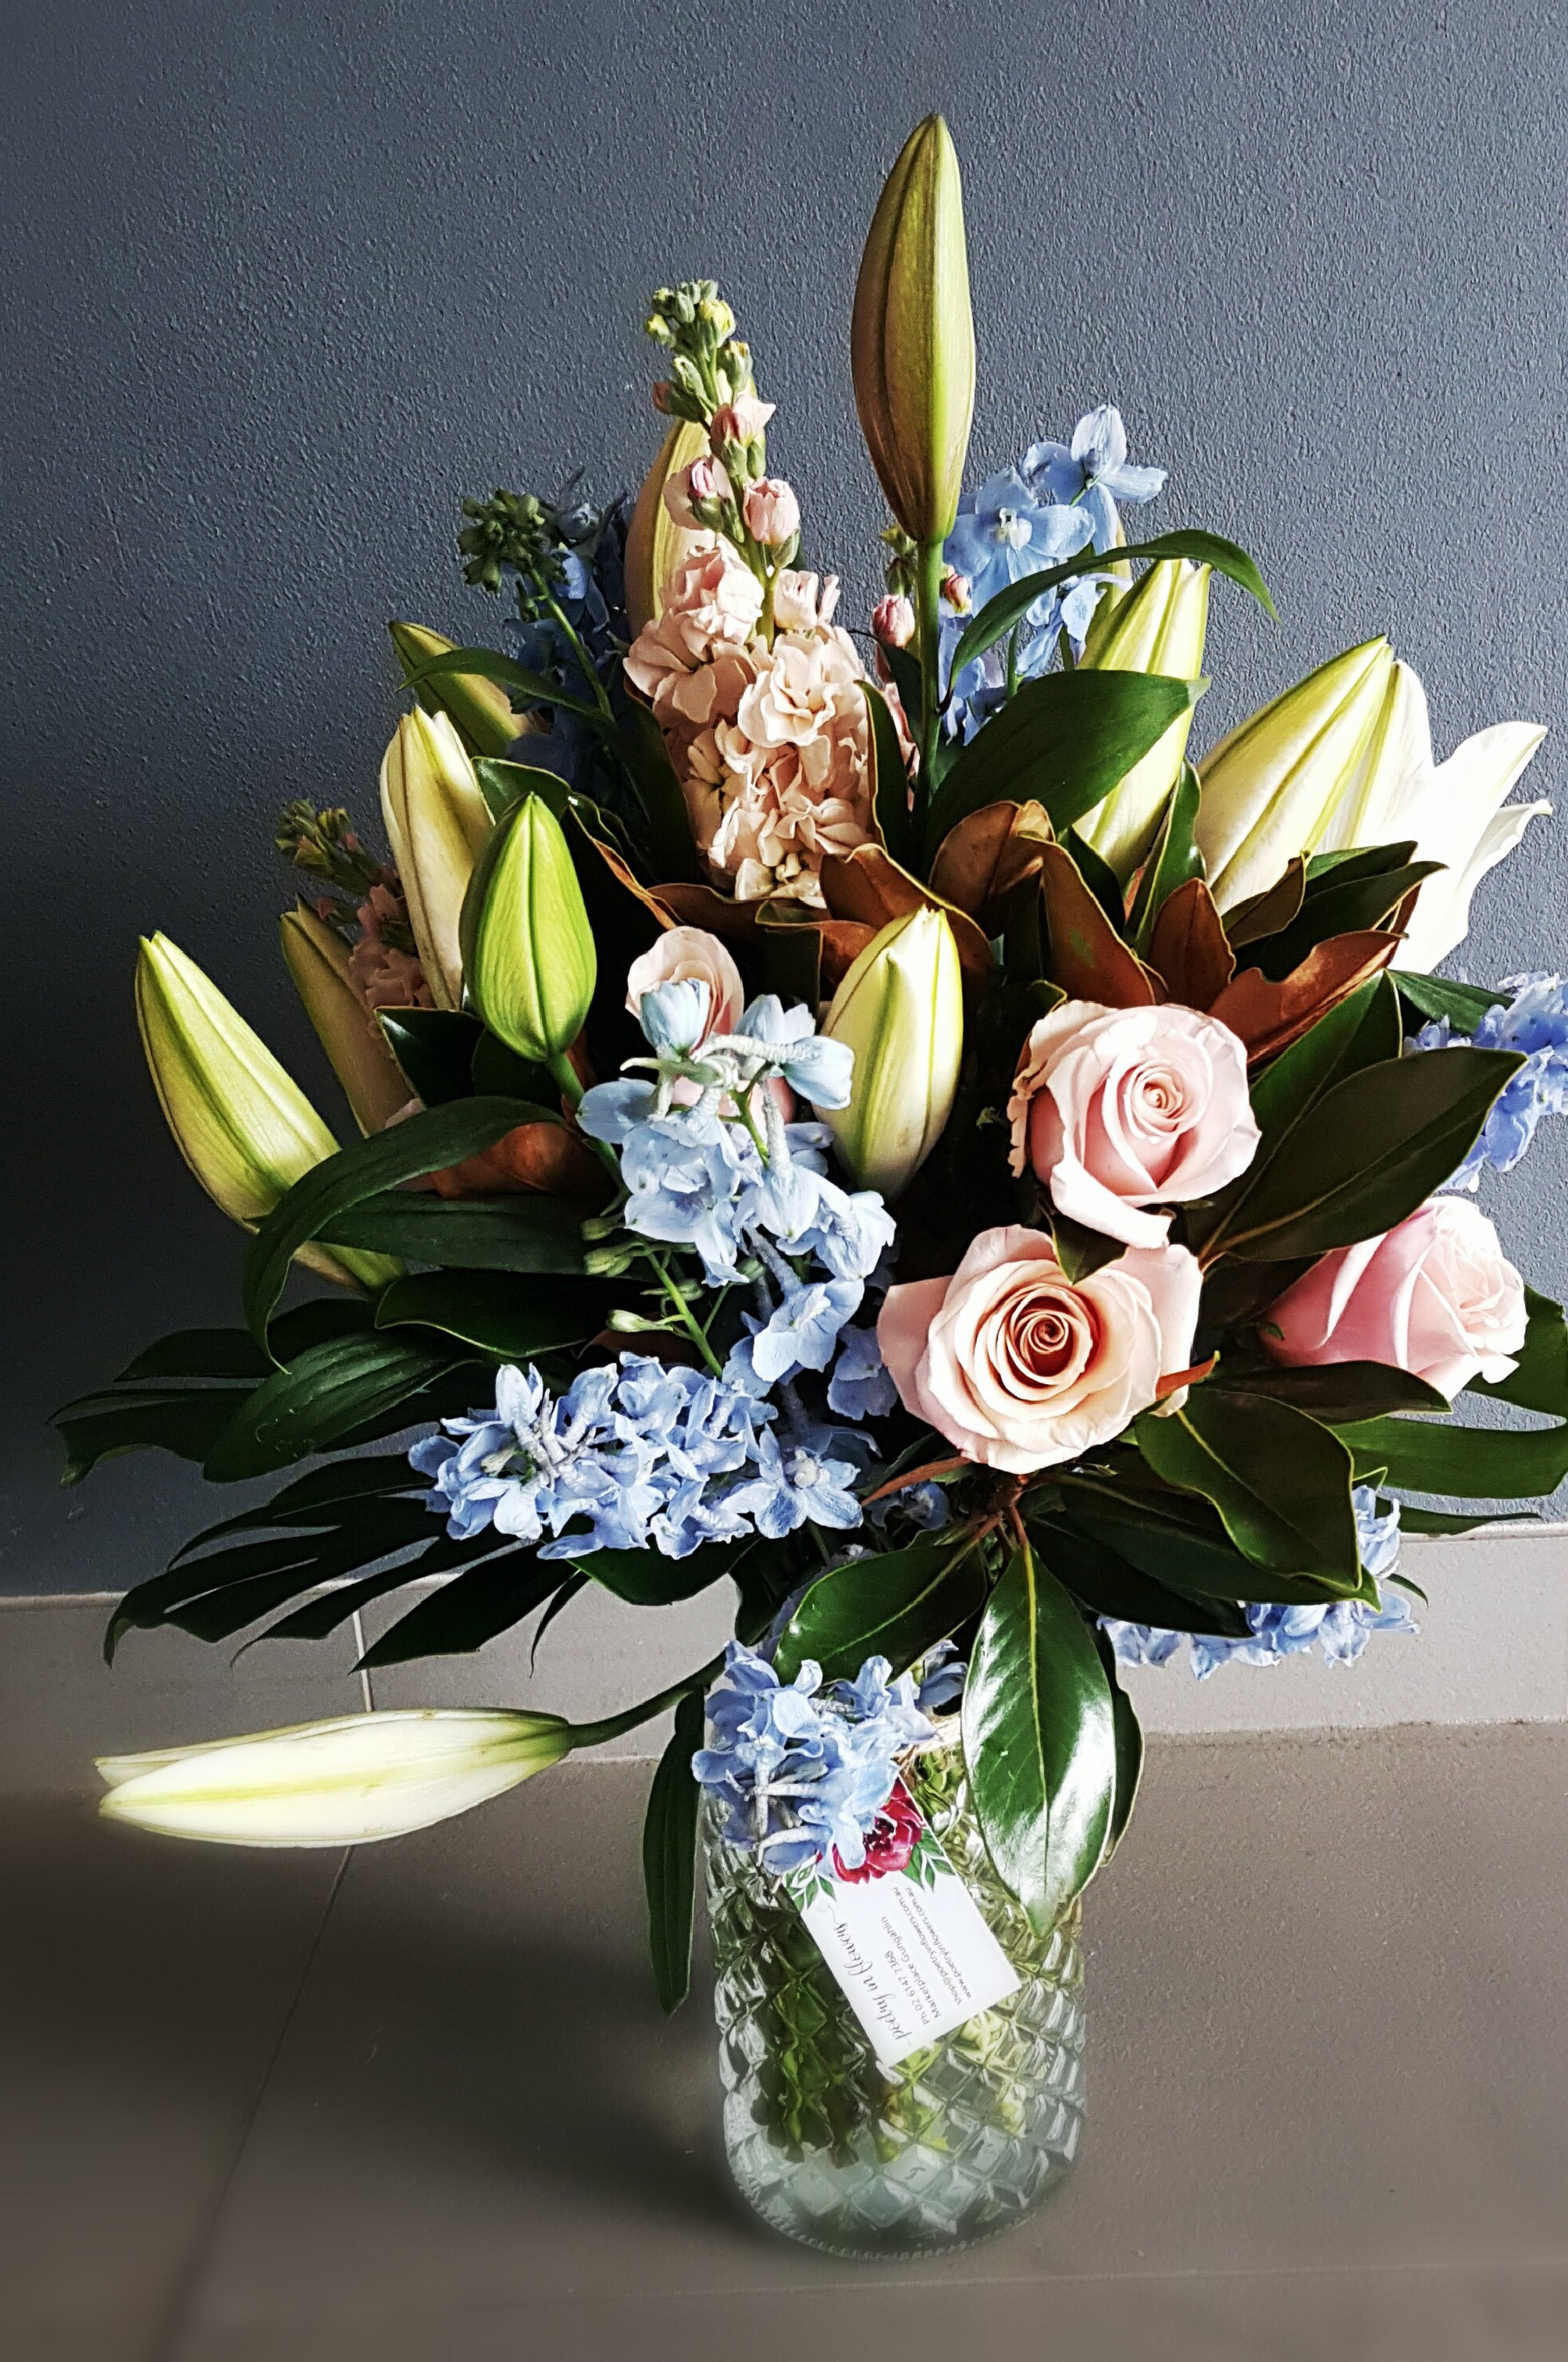 lenox small vase of best of flower delivery without vase otsego go info regarding flower delivery without vase fresh seasonal soft blooms poetry in flowers of flower delivery without vase